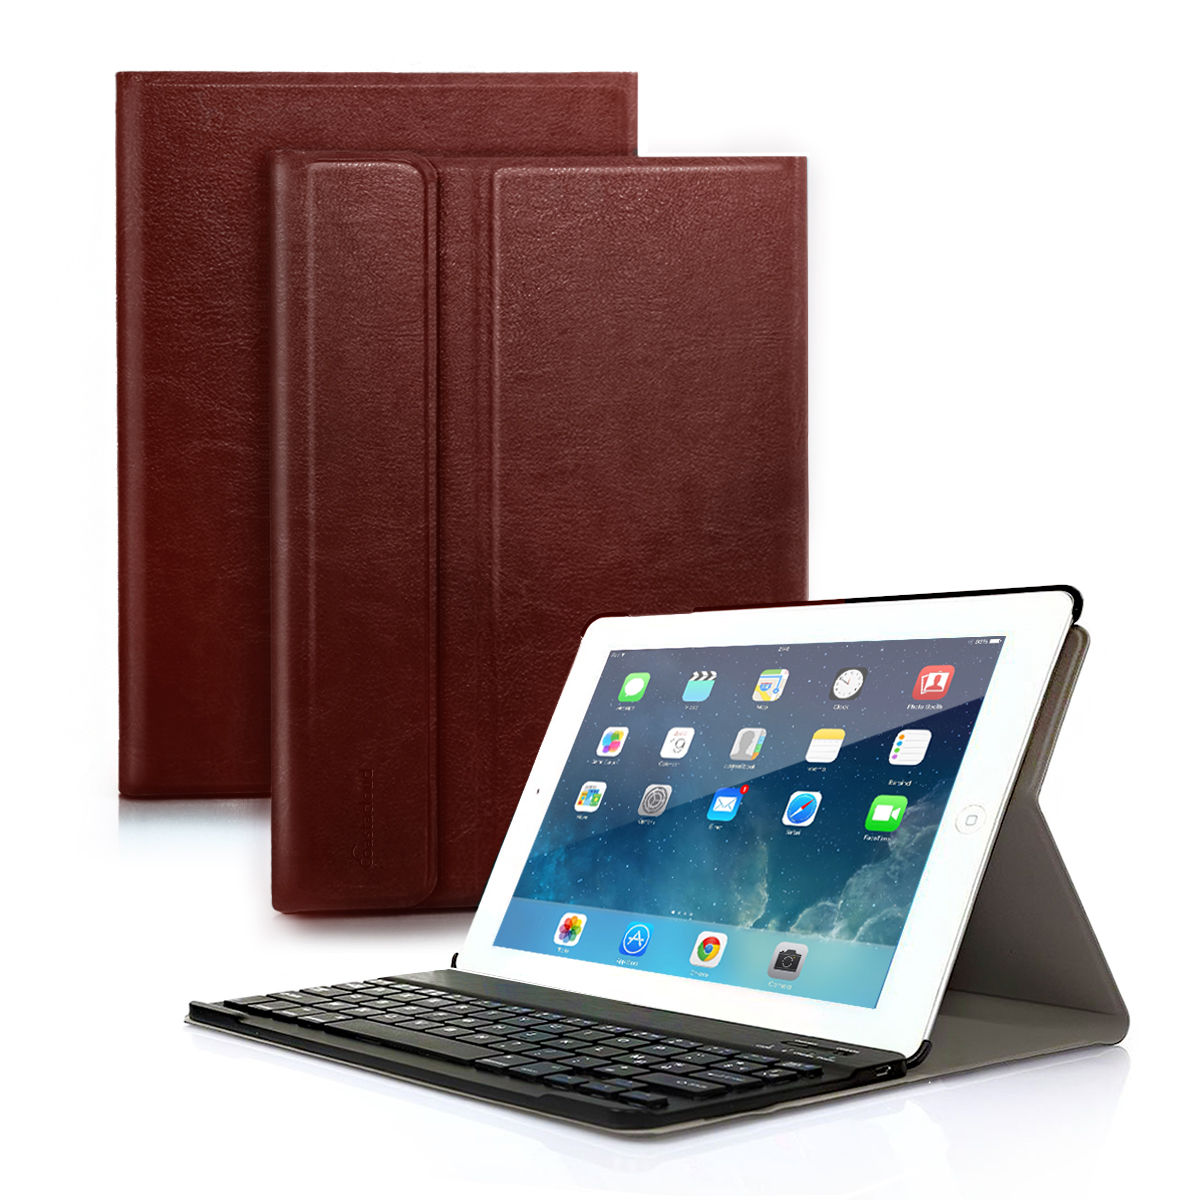 "New iPad 2017 Folio Case with Keyboard, iPad Pro 9.7 iPad Air 1 / 2 Detachable Bluetooth Keyboard with Anti-Slip Folio Case Cover for iPad Tablet (9.7"")"